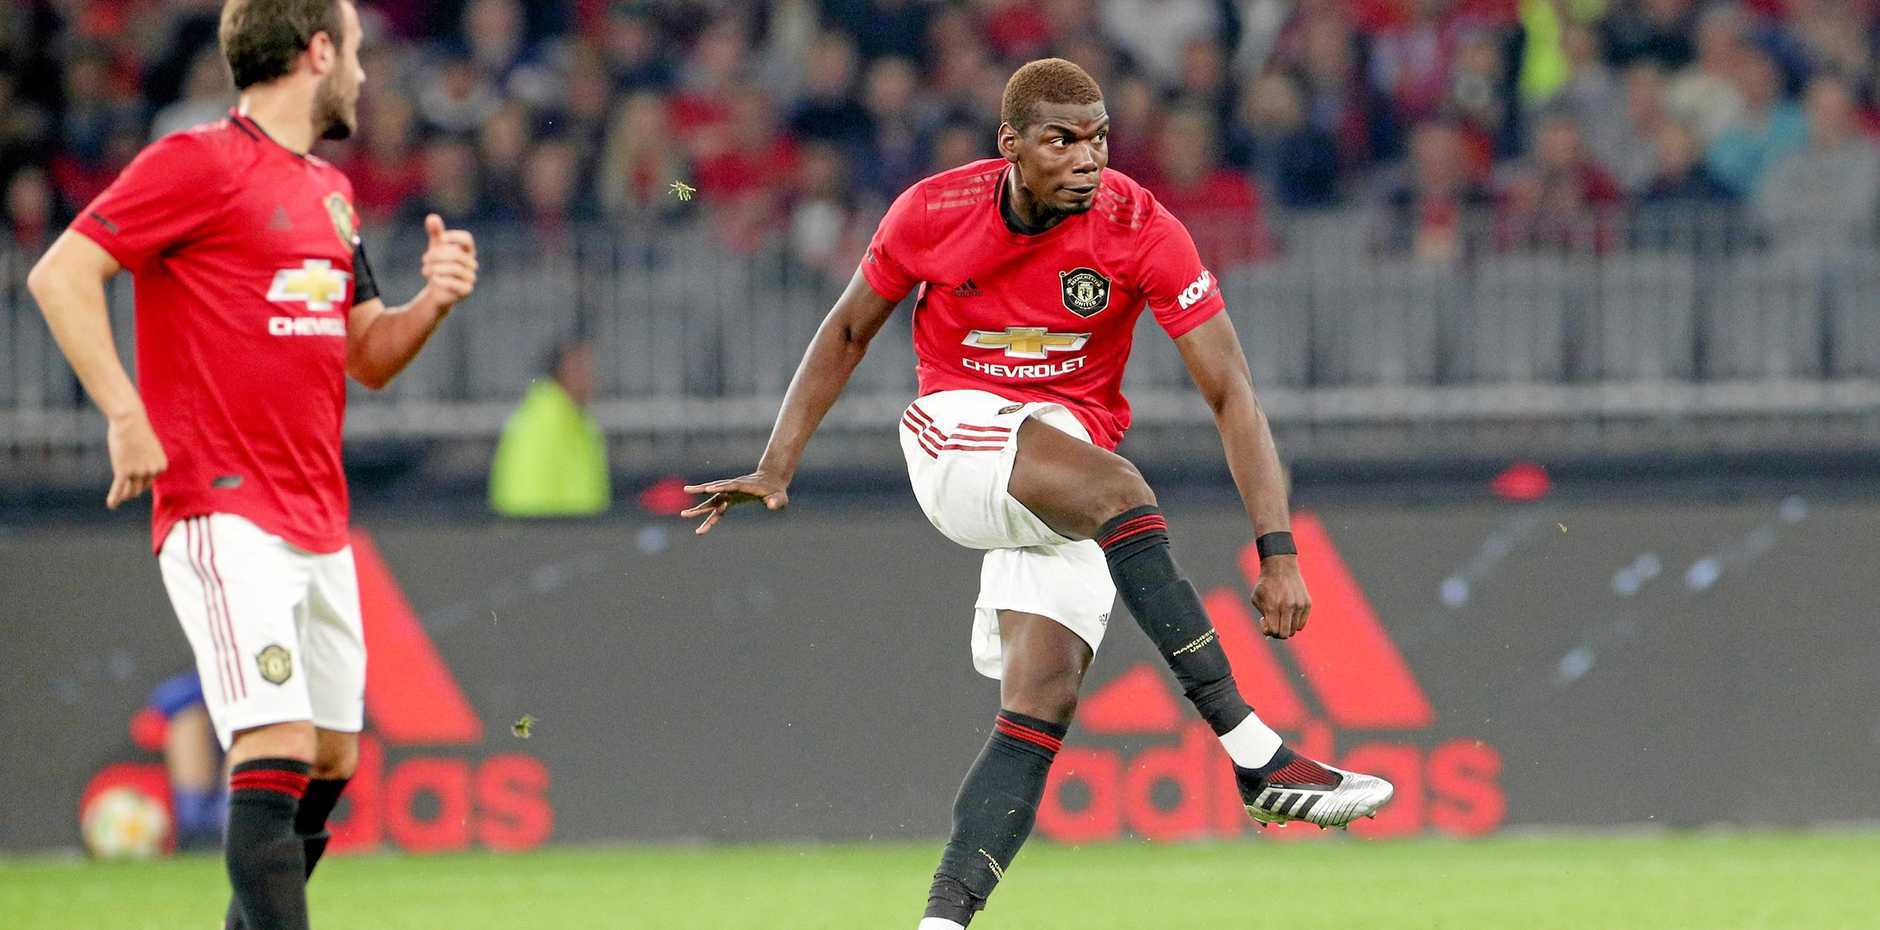 Paul Pogba takes a free kick during the clash between Manchester United and Leeds at Perth's Optus Stadium on July 17.  Picture: Richard Wainwright/AAP